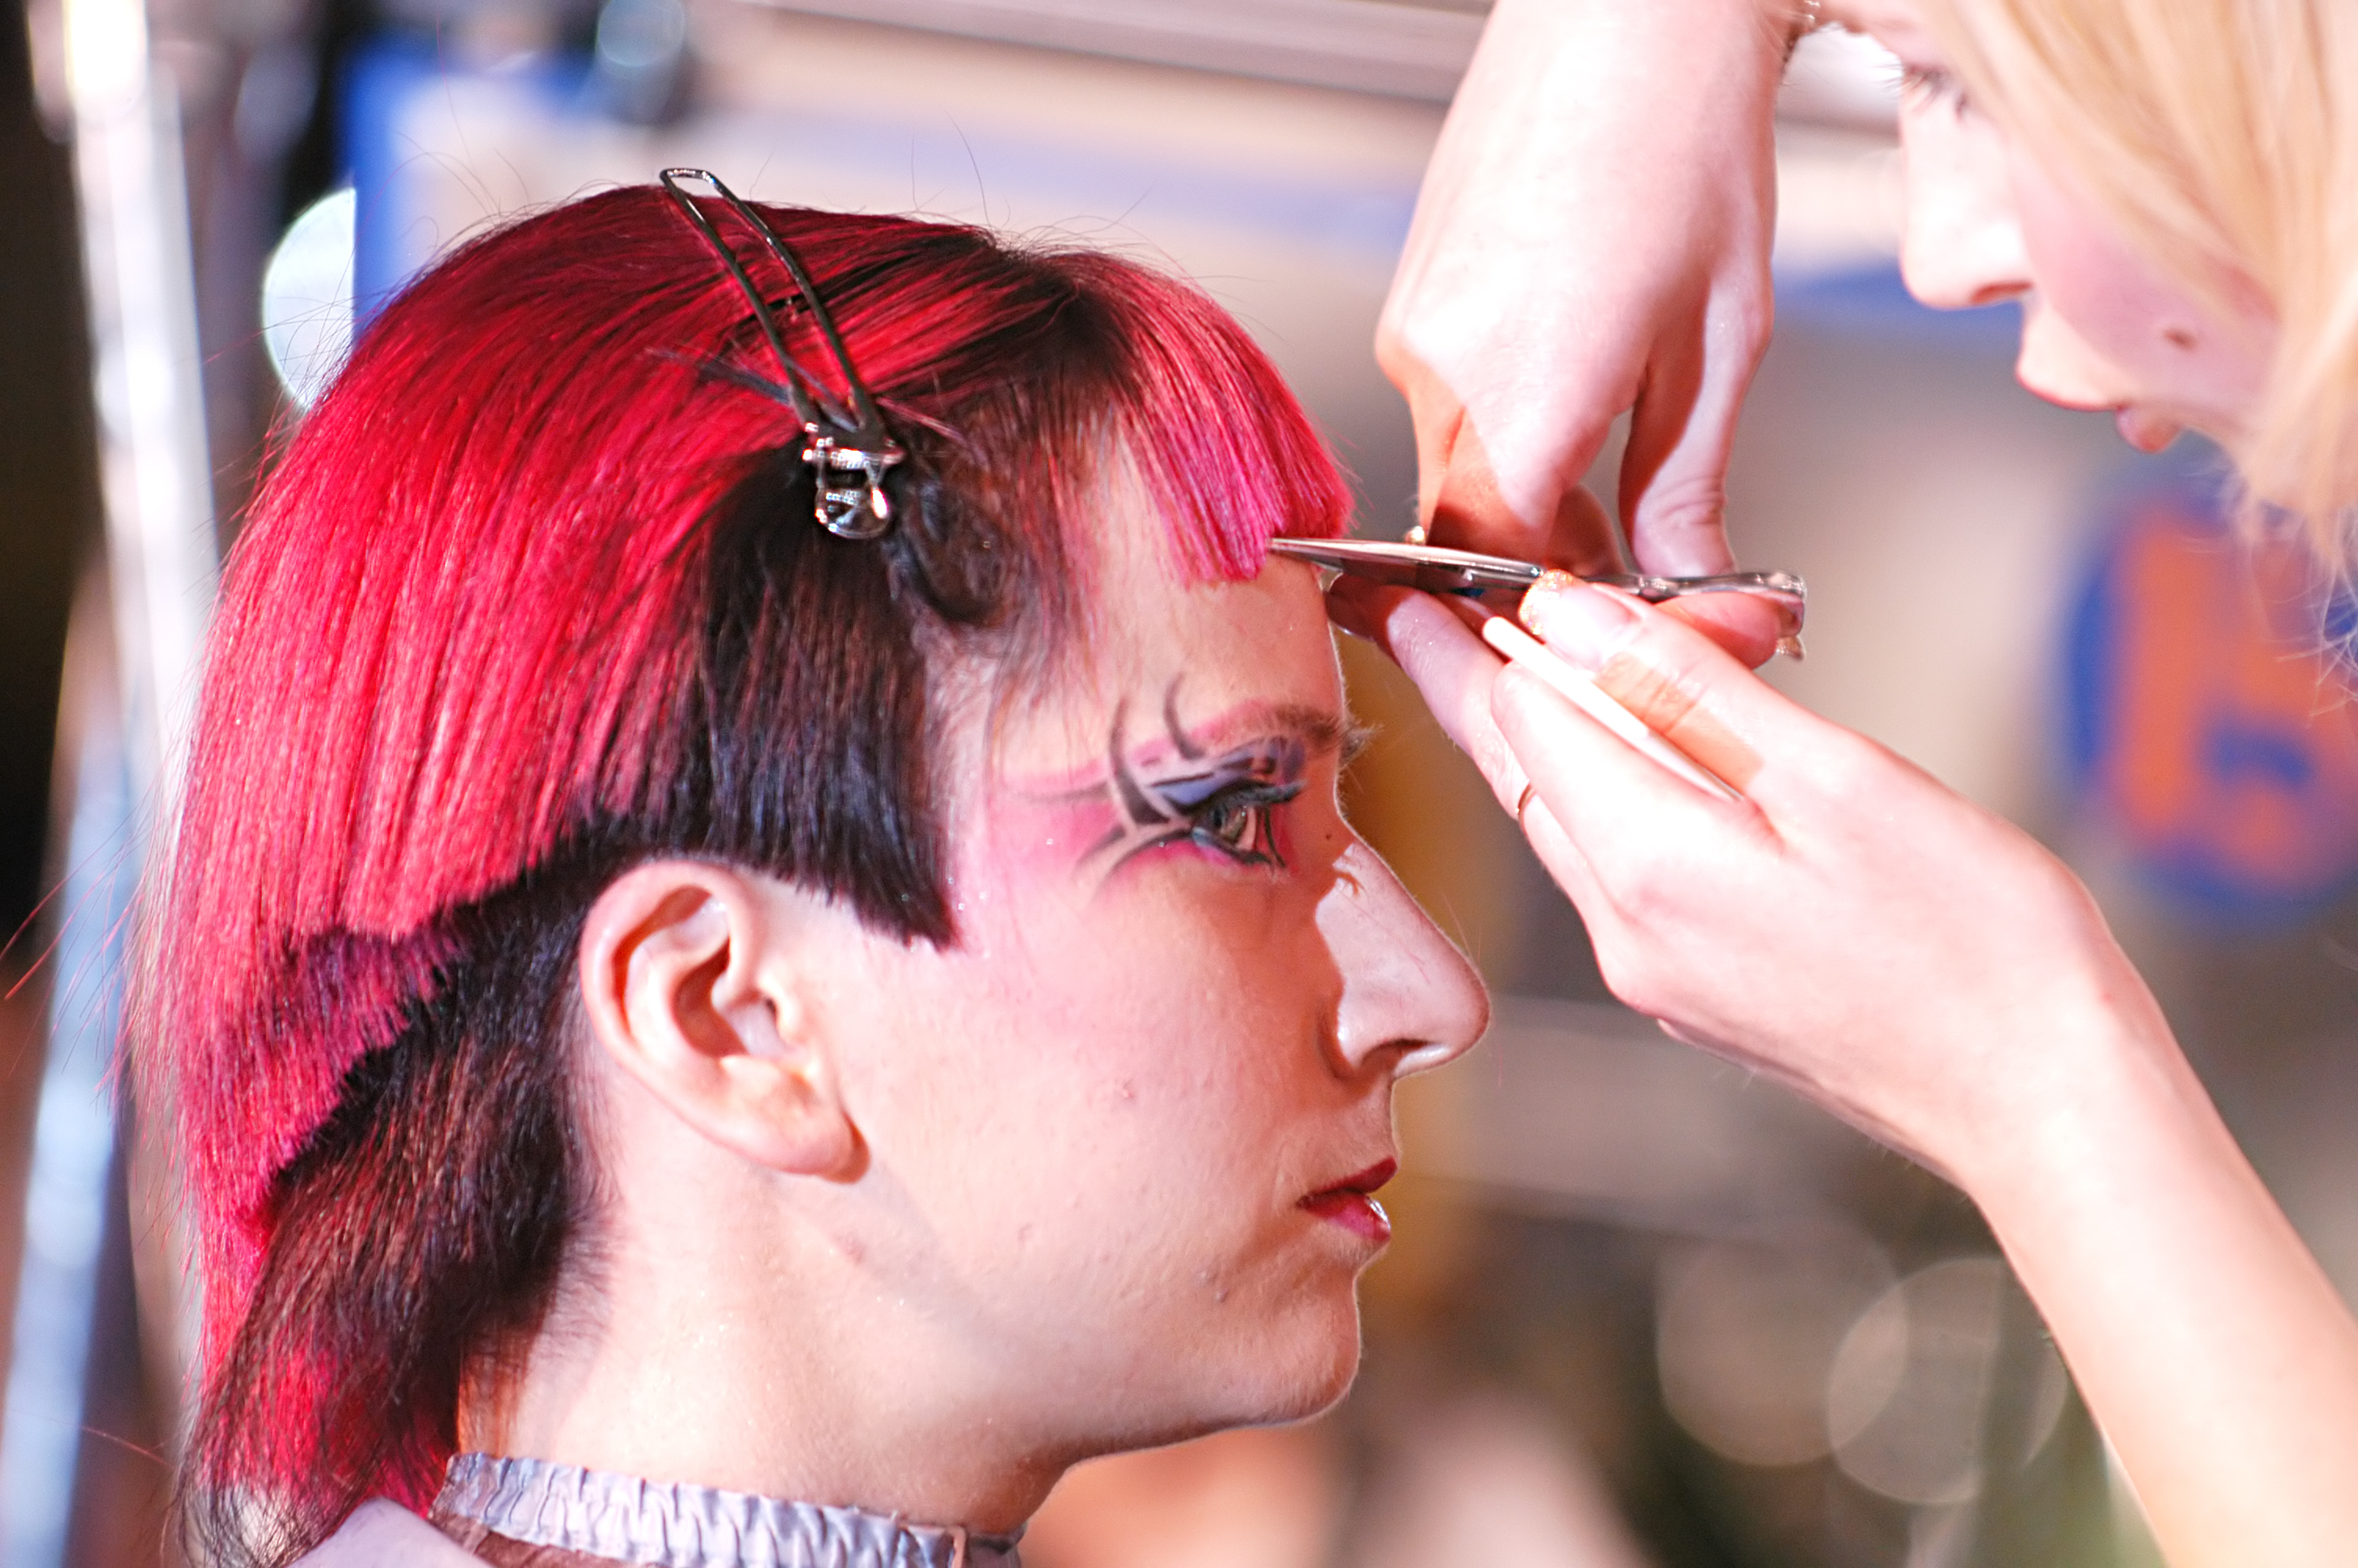 Hairdressing students will be putting their skills to the test